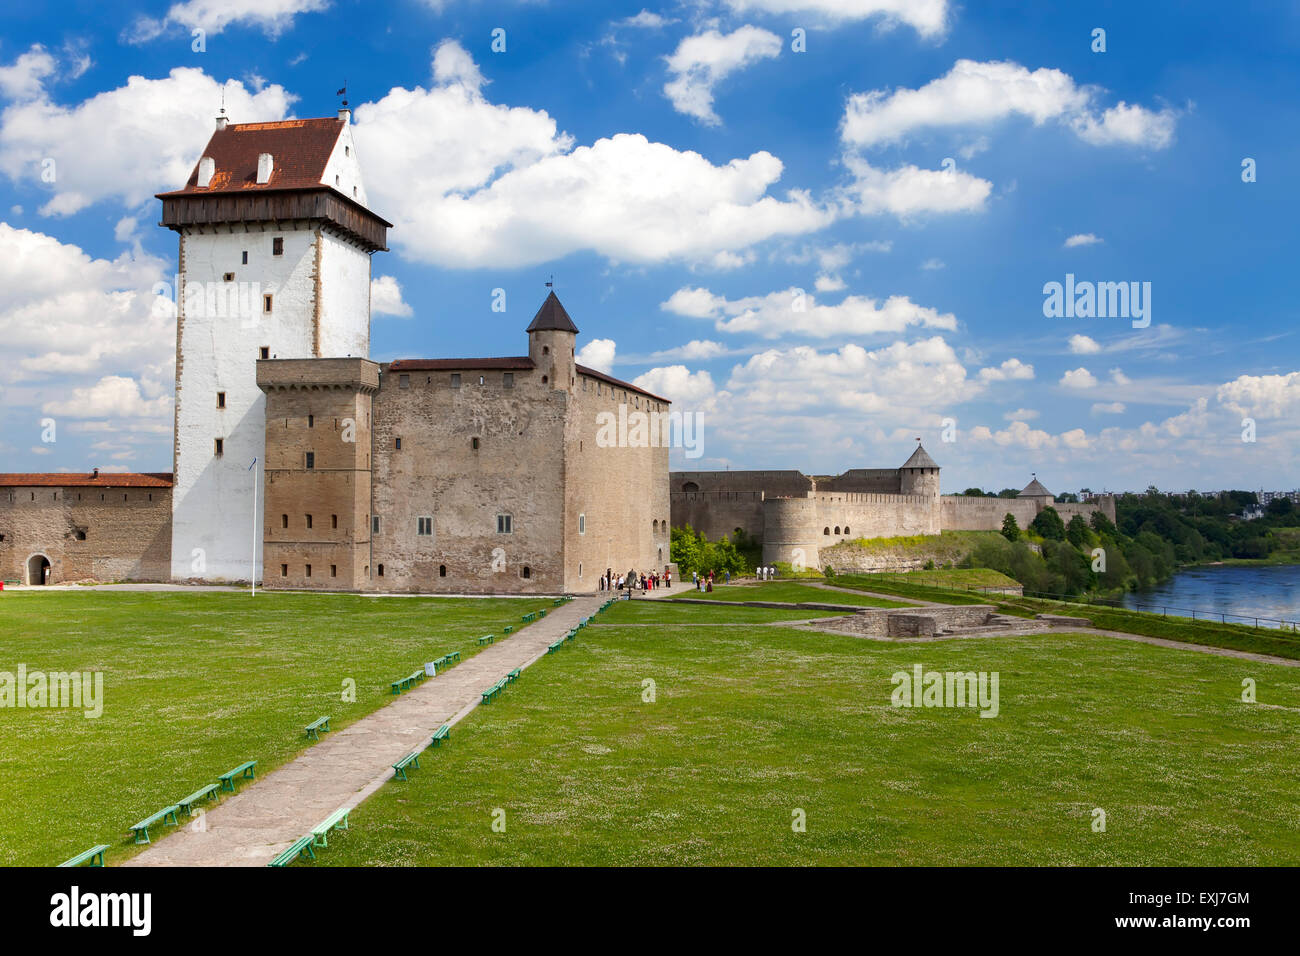 Two ancient fortresses on the parties from the river which is border. Narva, Estonia and Ivangorod behind the river, - Stock Image